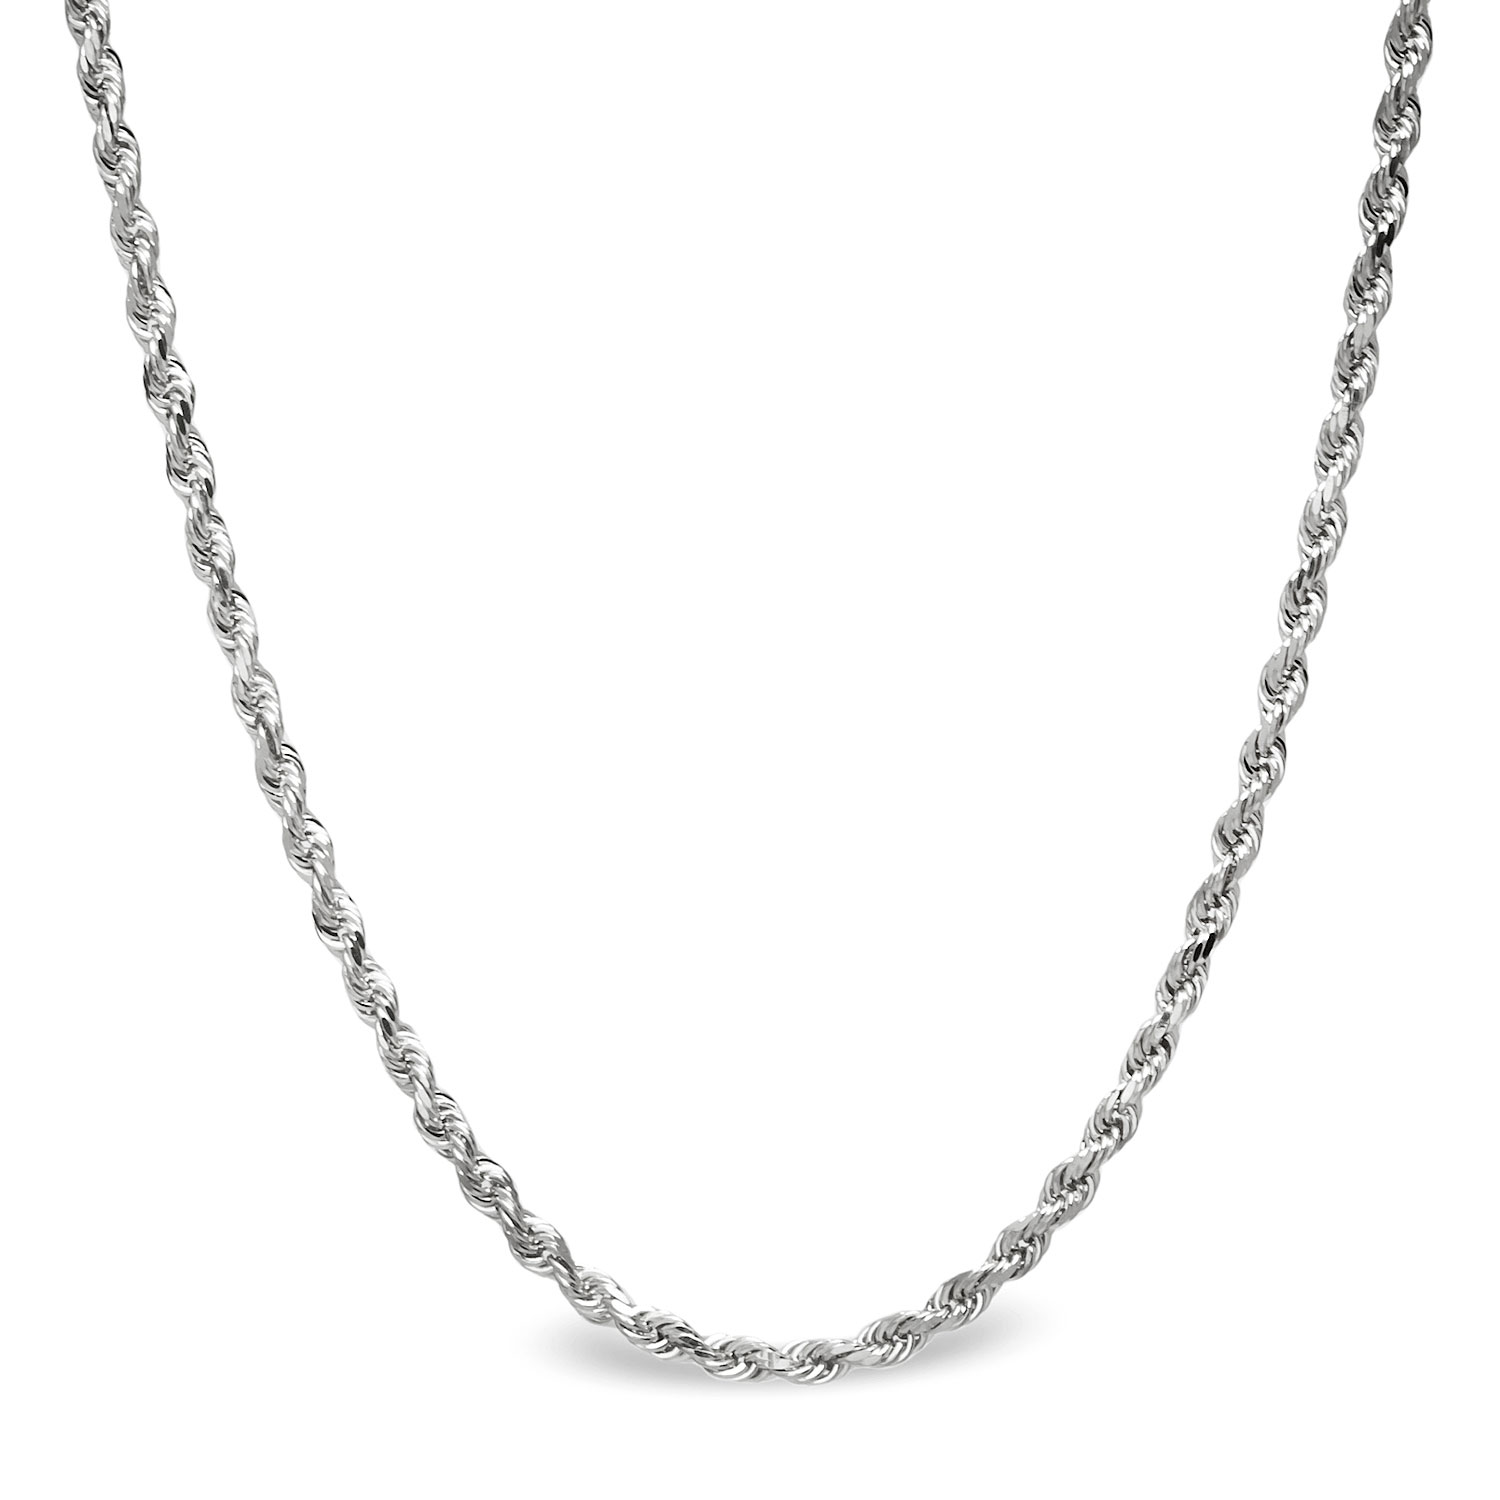 Diamond Cut Rope 14k White Gold Necklace - 18 in.